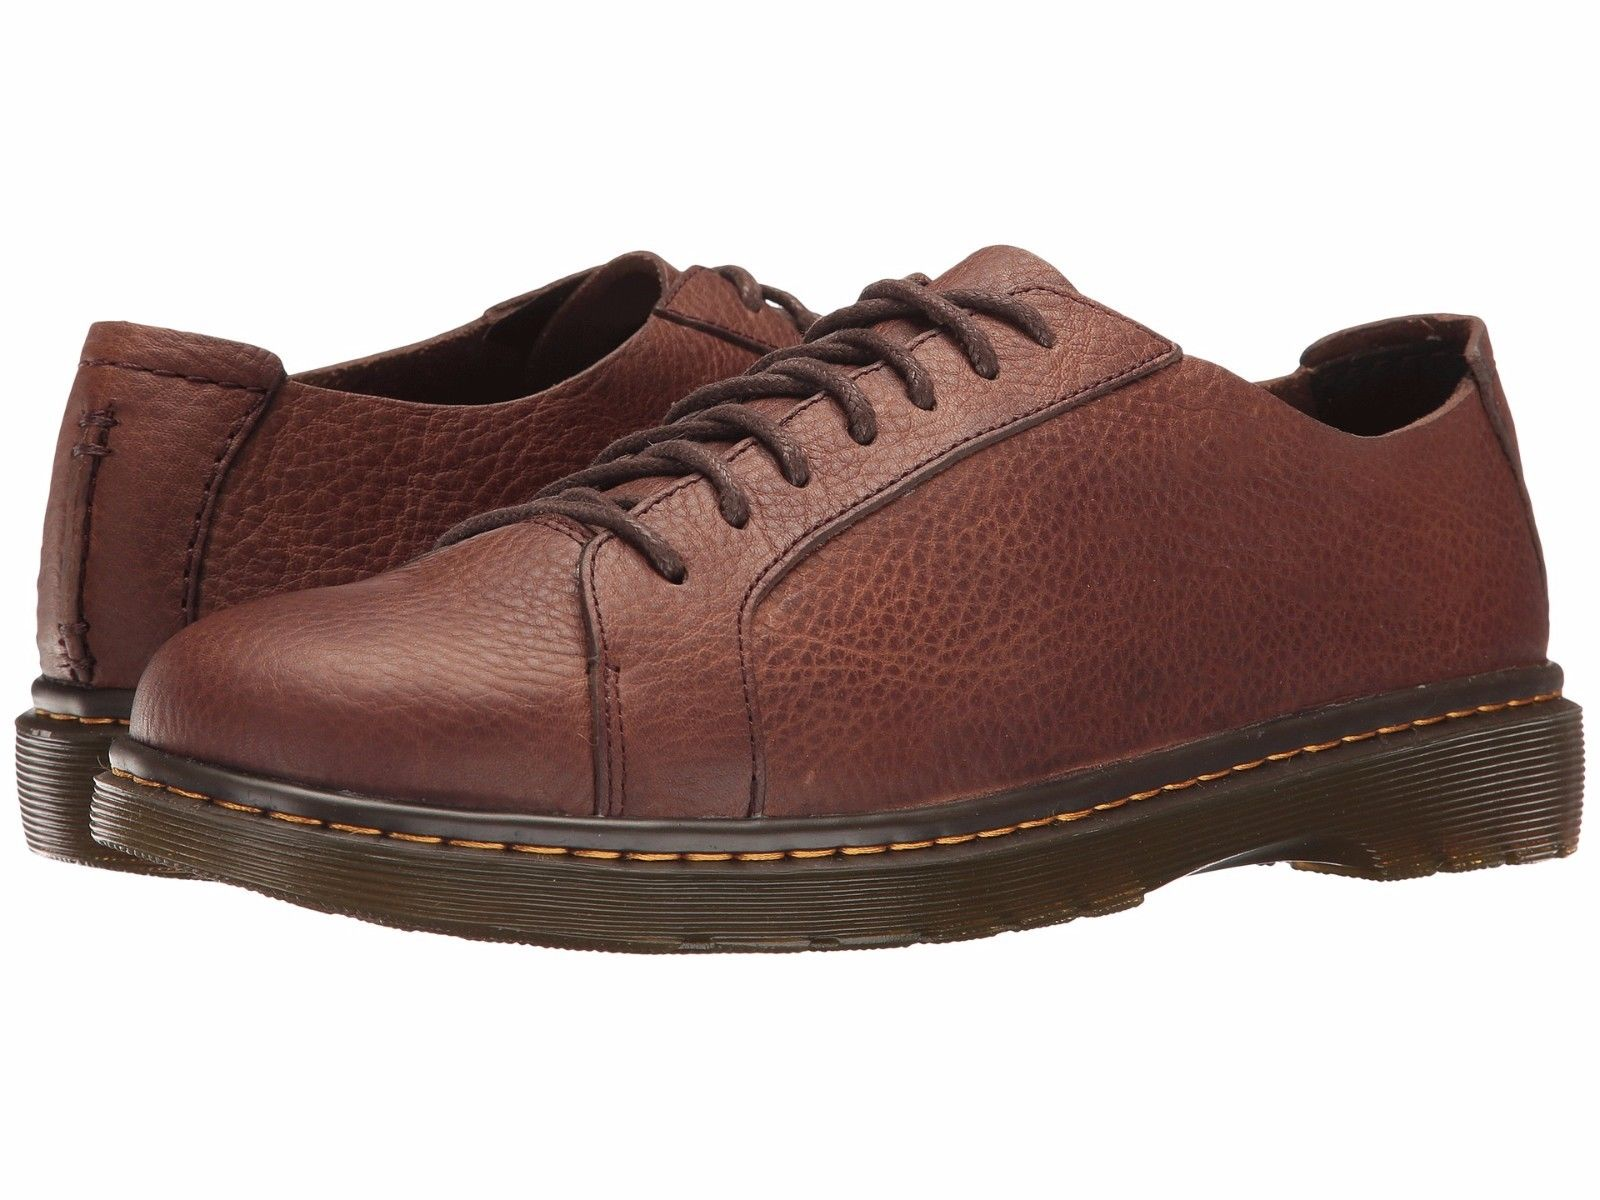 Dr. Martens Islip Men's Shoes 7 Eye Leather Oxfords 22108201 Dark Brown by Dr. Martens